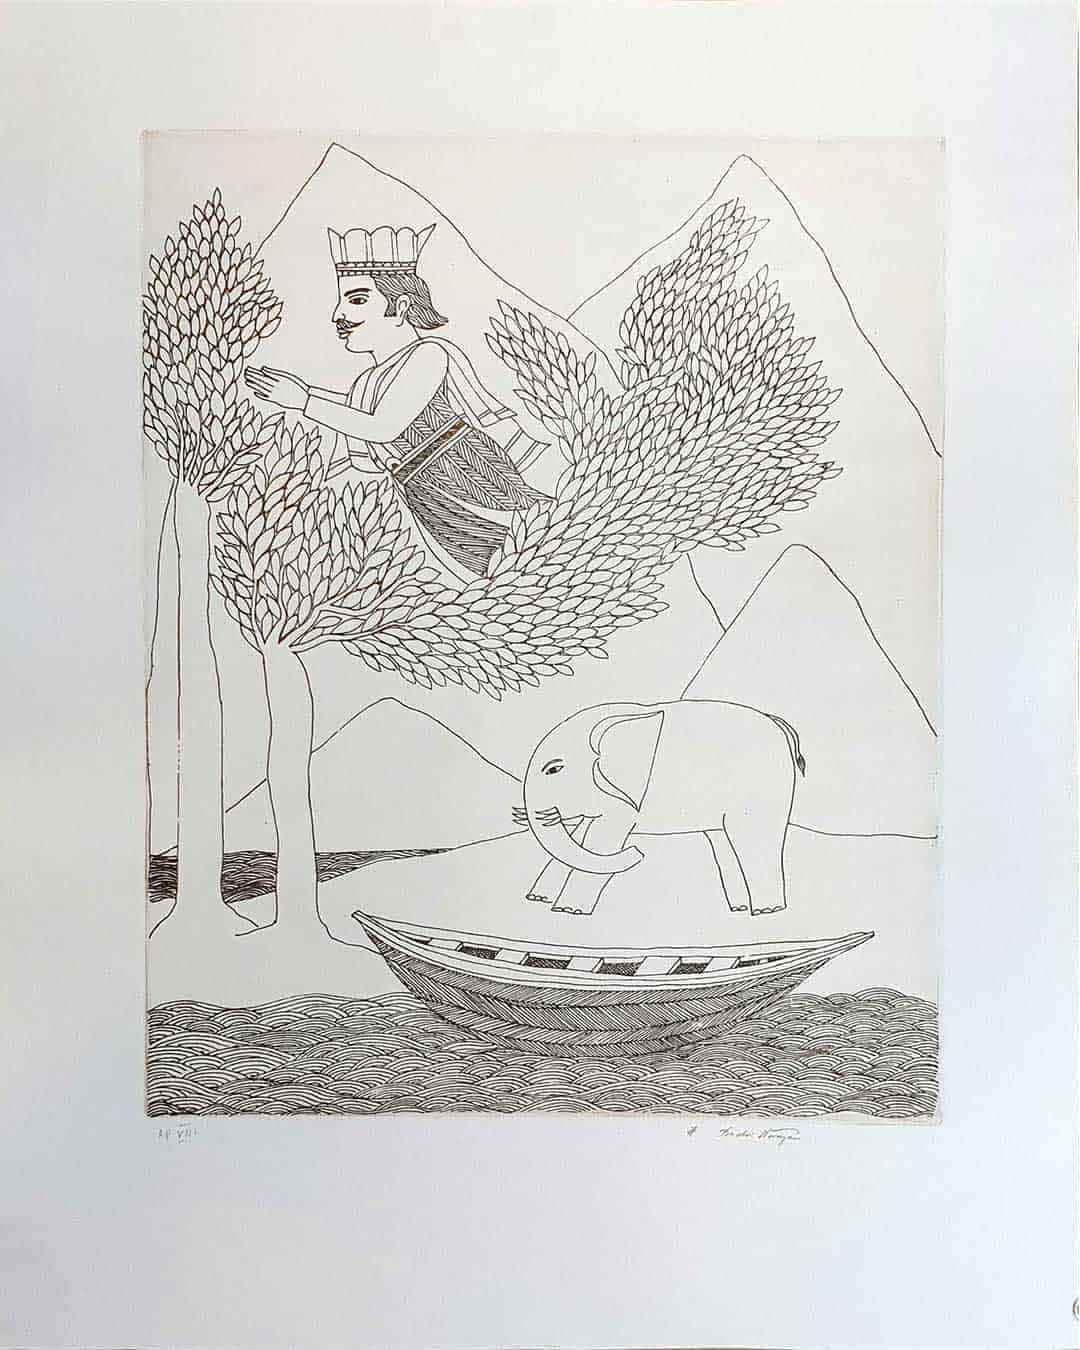 king-elephant-boat-etching-on-paper-16×20.25-inches-min